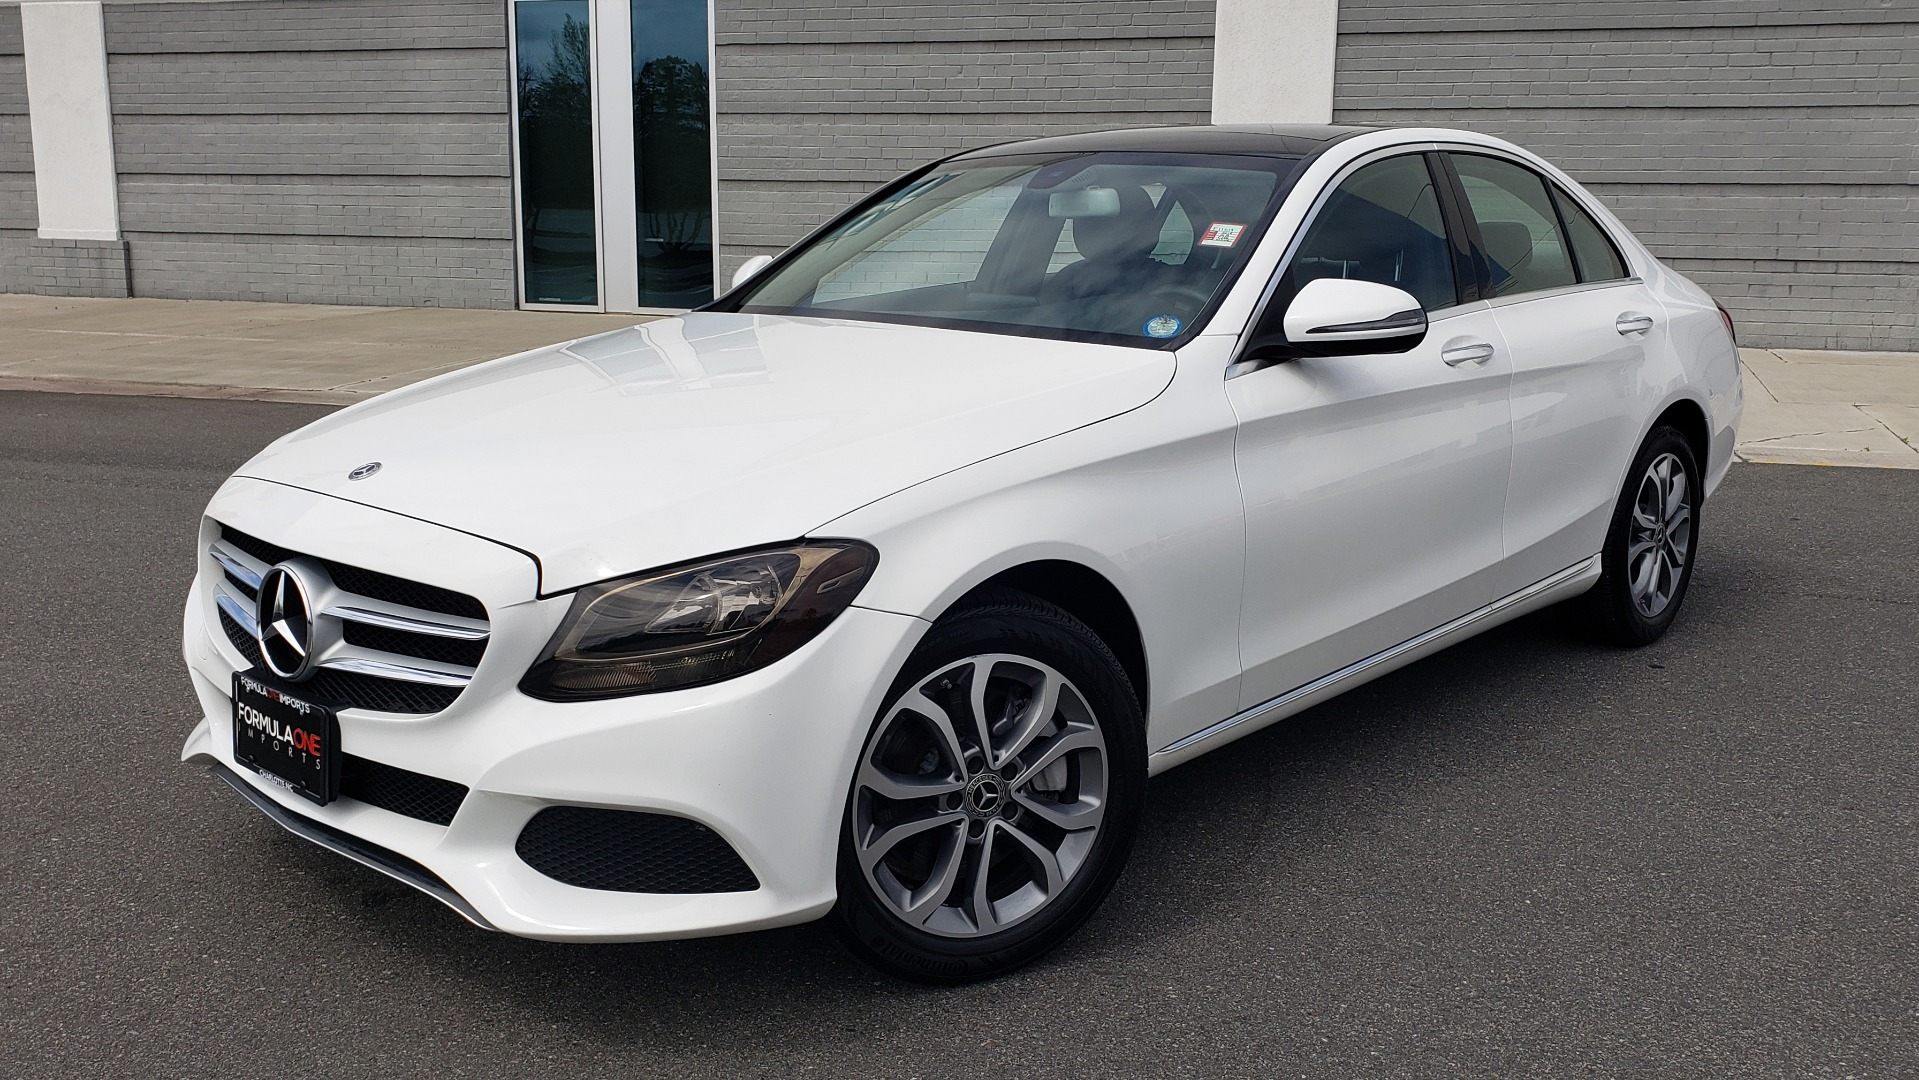 Used 2018 Mercedes-Benz C-CLASS C 300 4MATIC PREMIUM / HTD STS / PANO-ROOF / REARVIEW for sale Sold at Formula Imports in Charlotte NC 28227 1